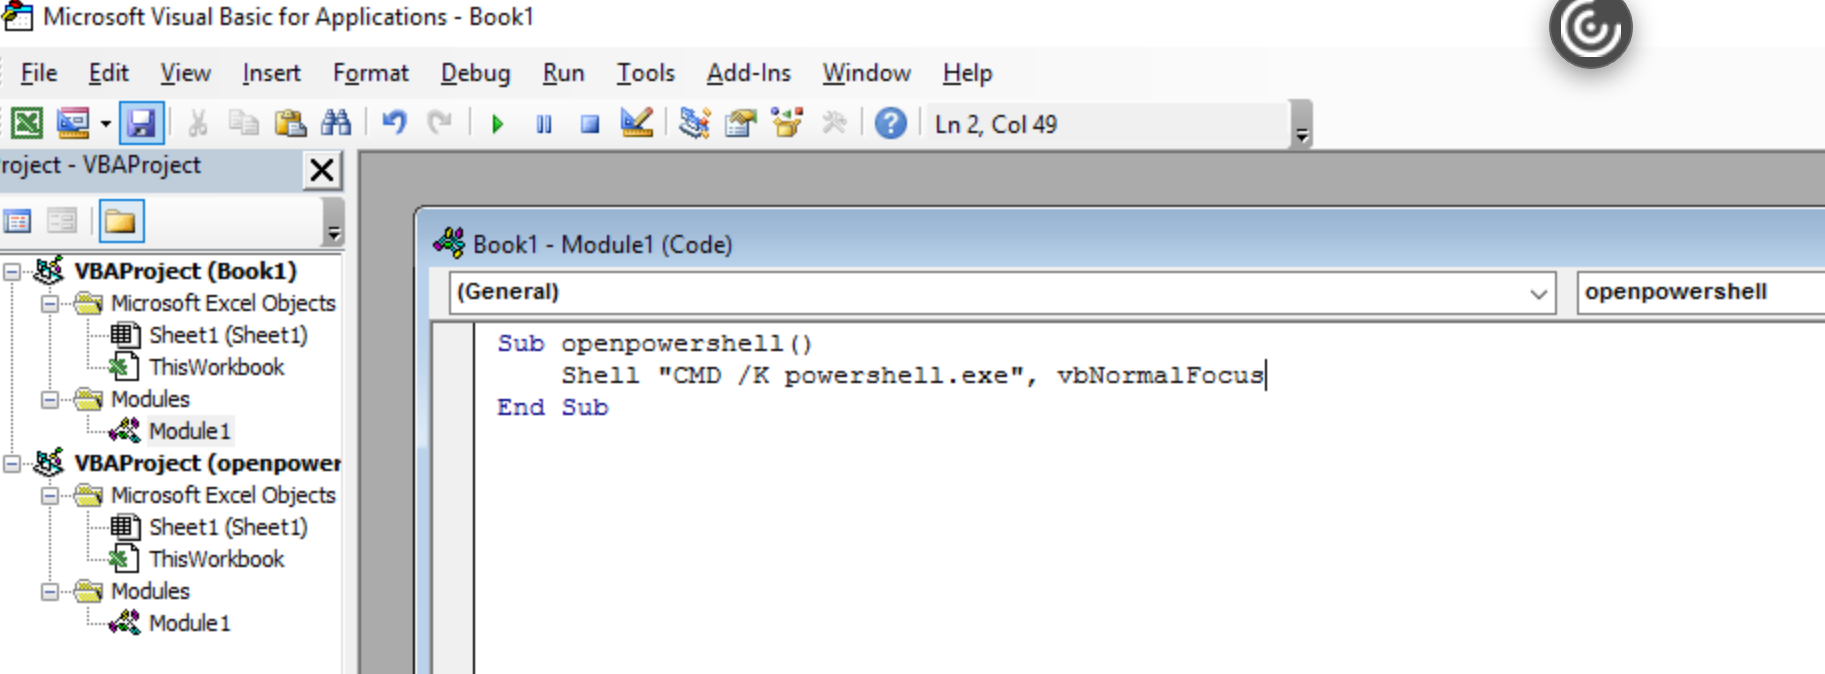 """Shell """"CMD /K powershell.exe"""", vbNormalFocus"""